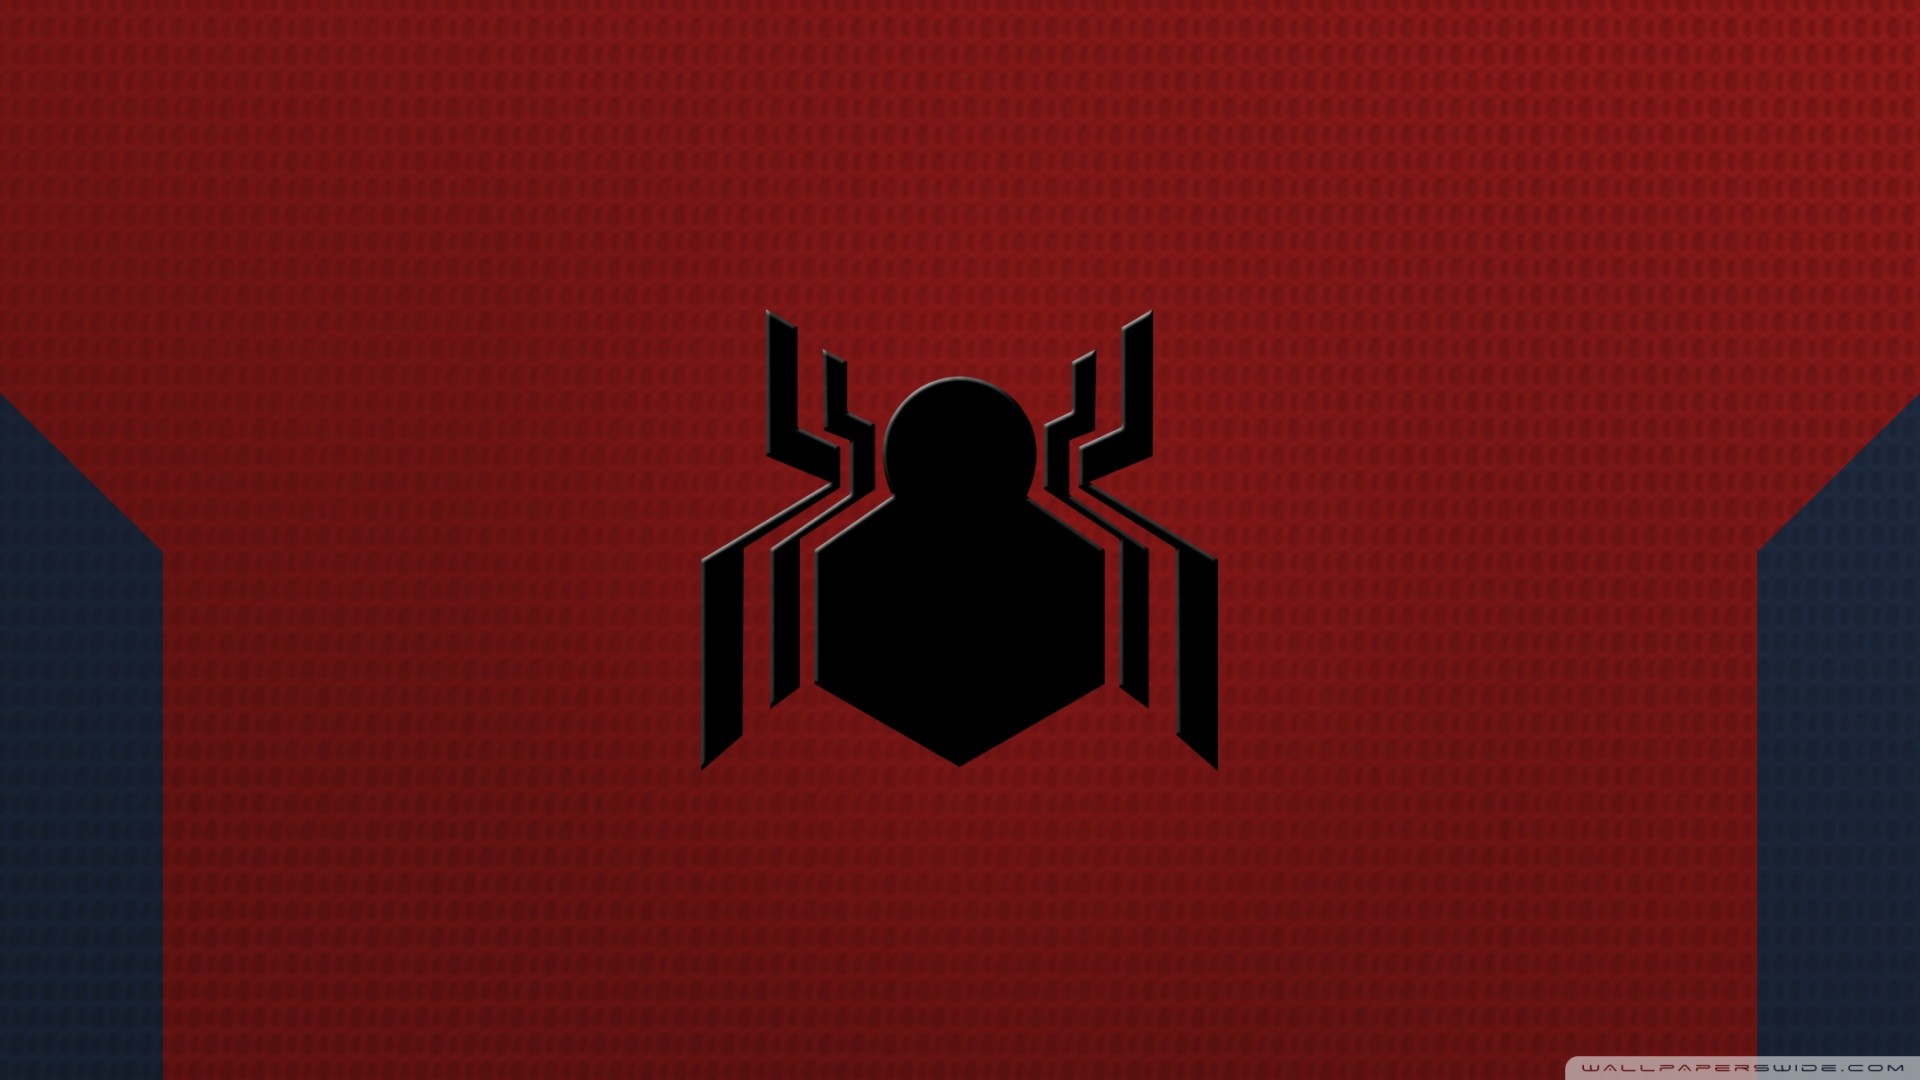 Spiderman 3 Hd Wallpapers 1080p